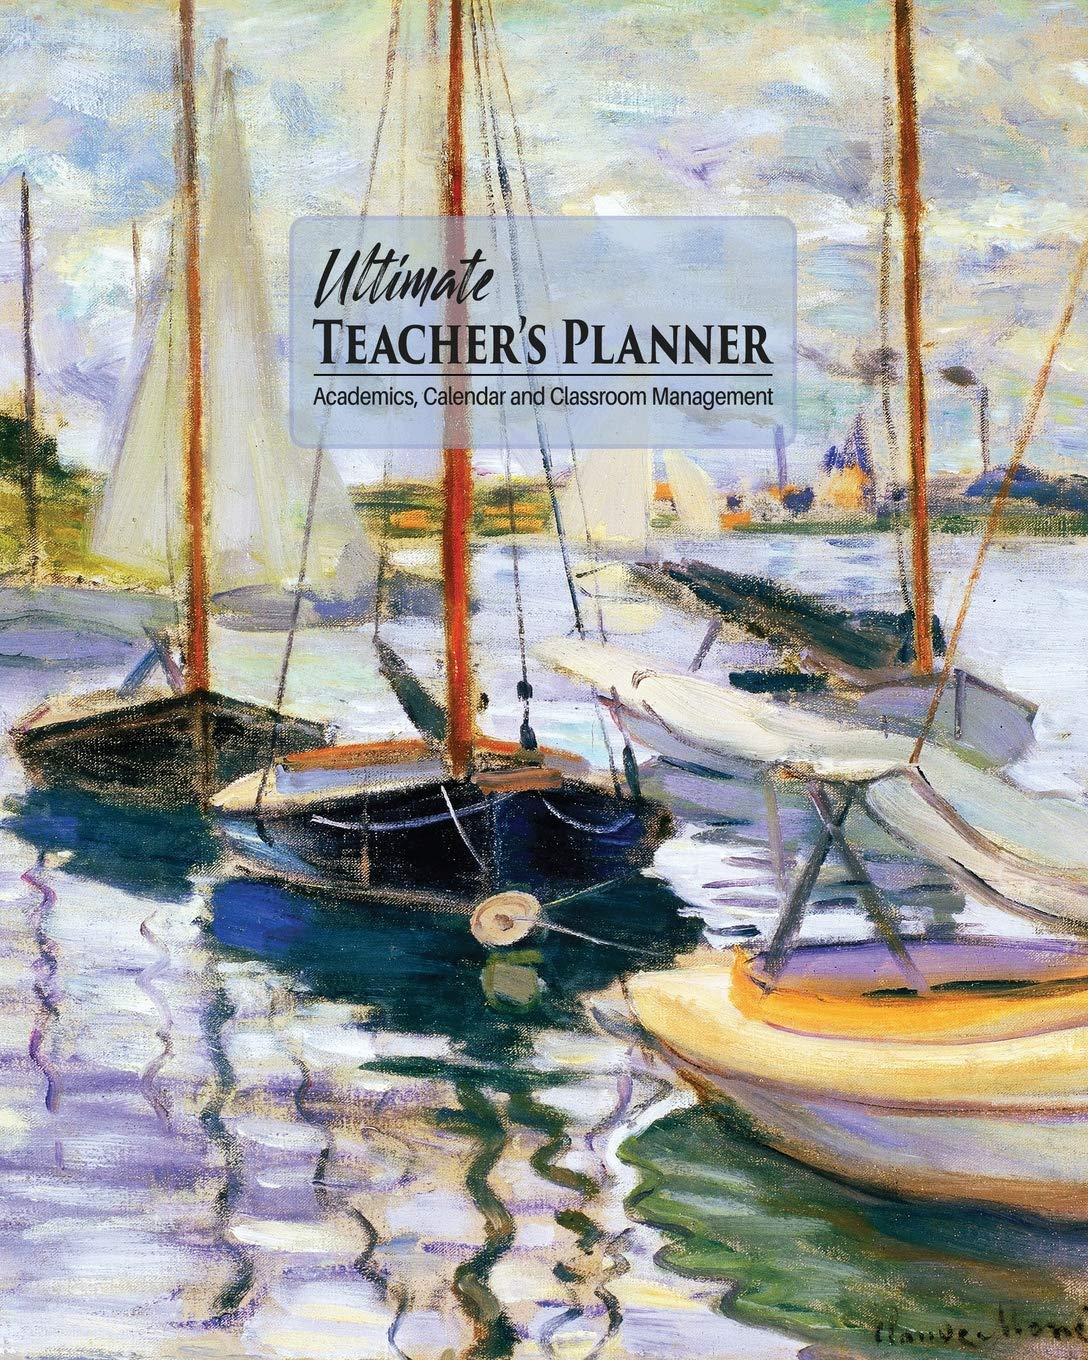 Ultimate Teacher's Planner: Monet Sailboats Themed Cover and a